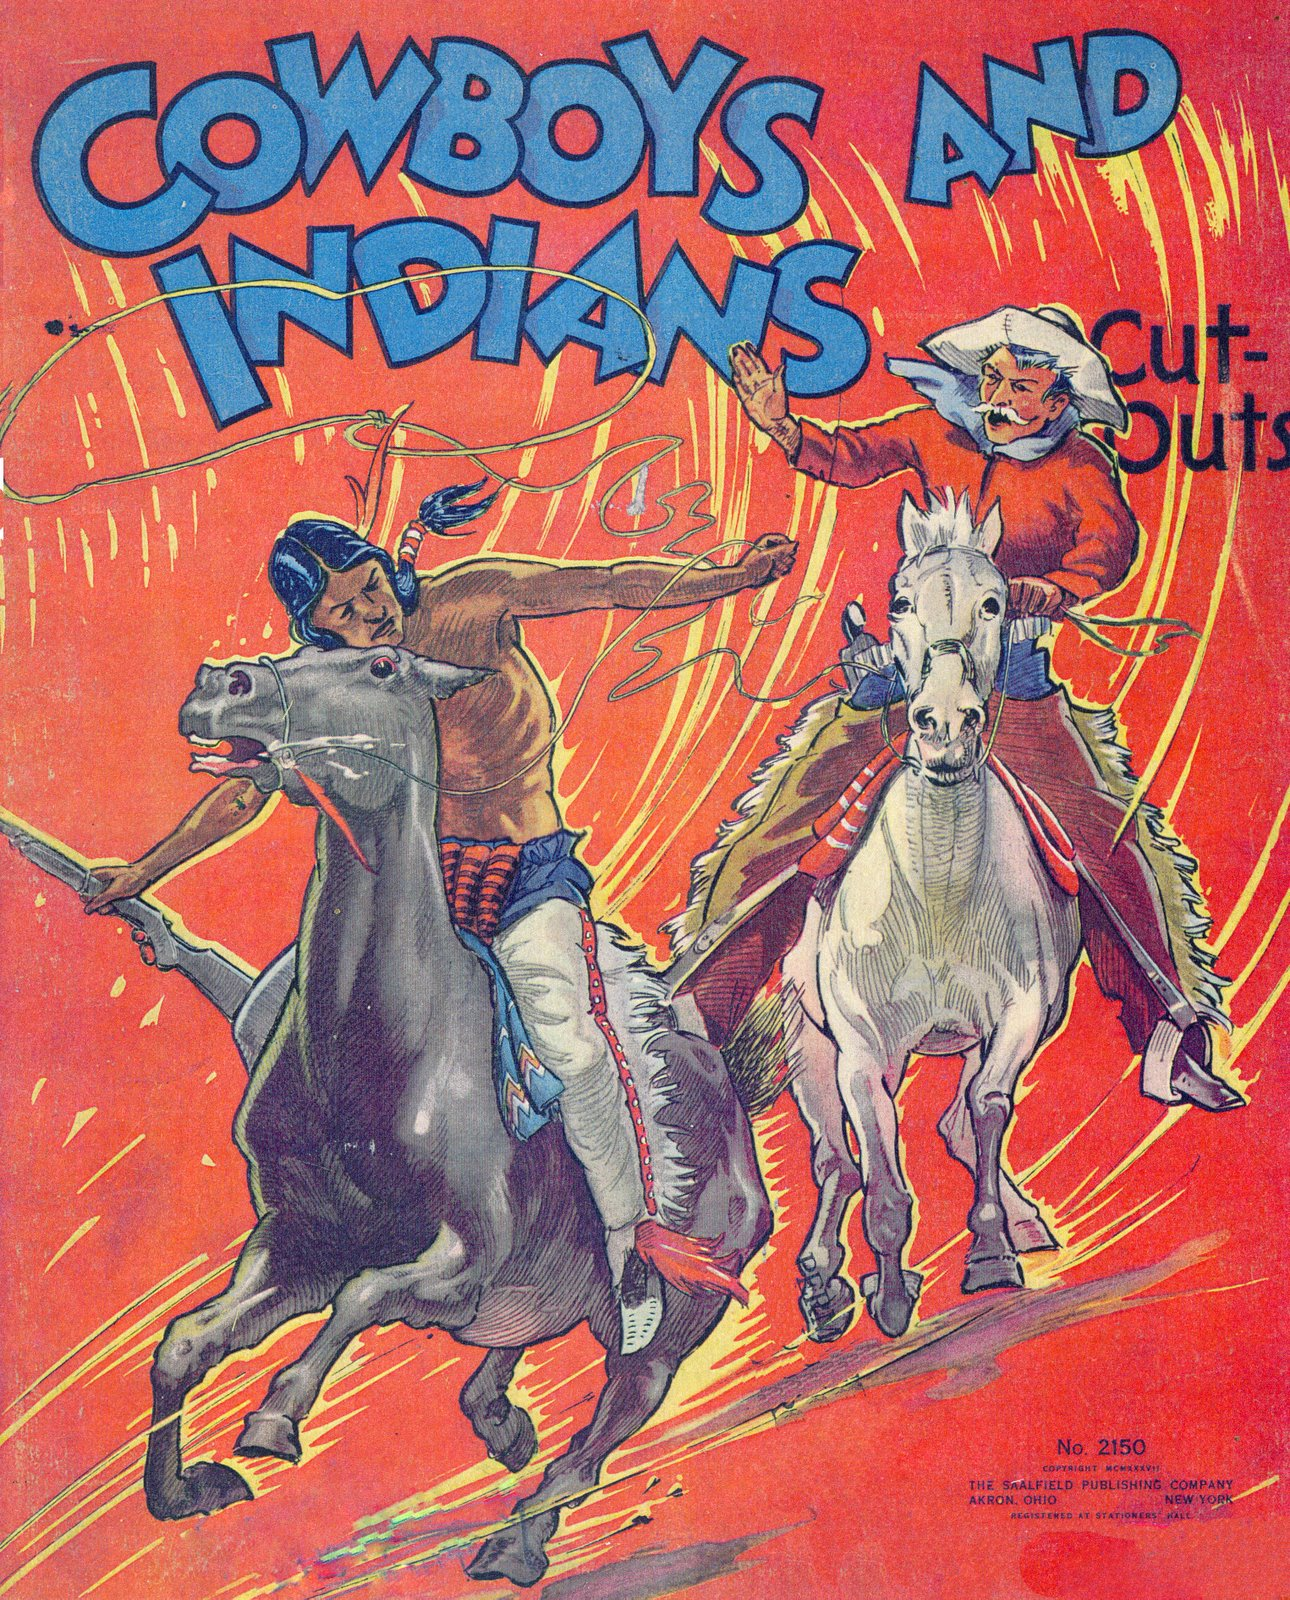 cowboys and indians Watch cowboys and indians porn videos for free, here on pornhubcom sort movies by most relevant and catch the best cowboys and indians movies now.